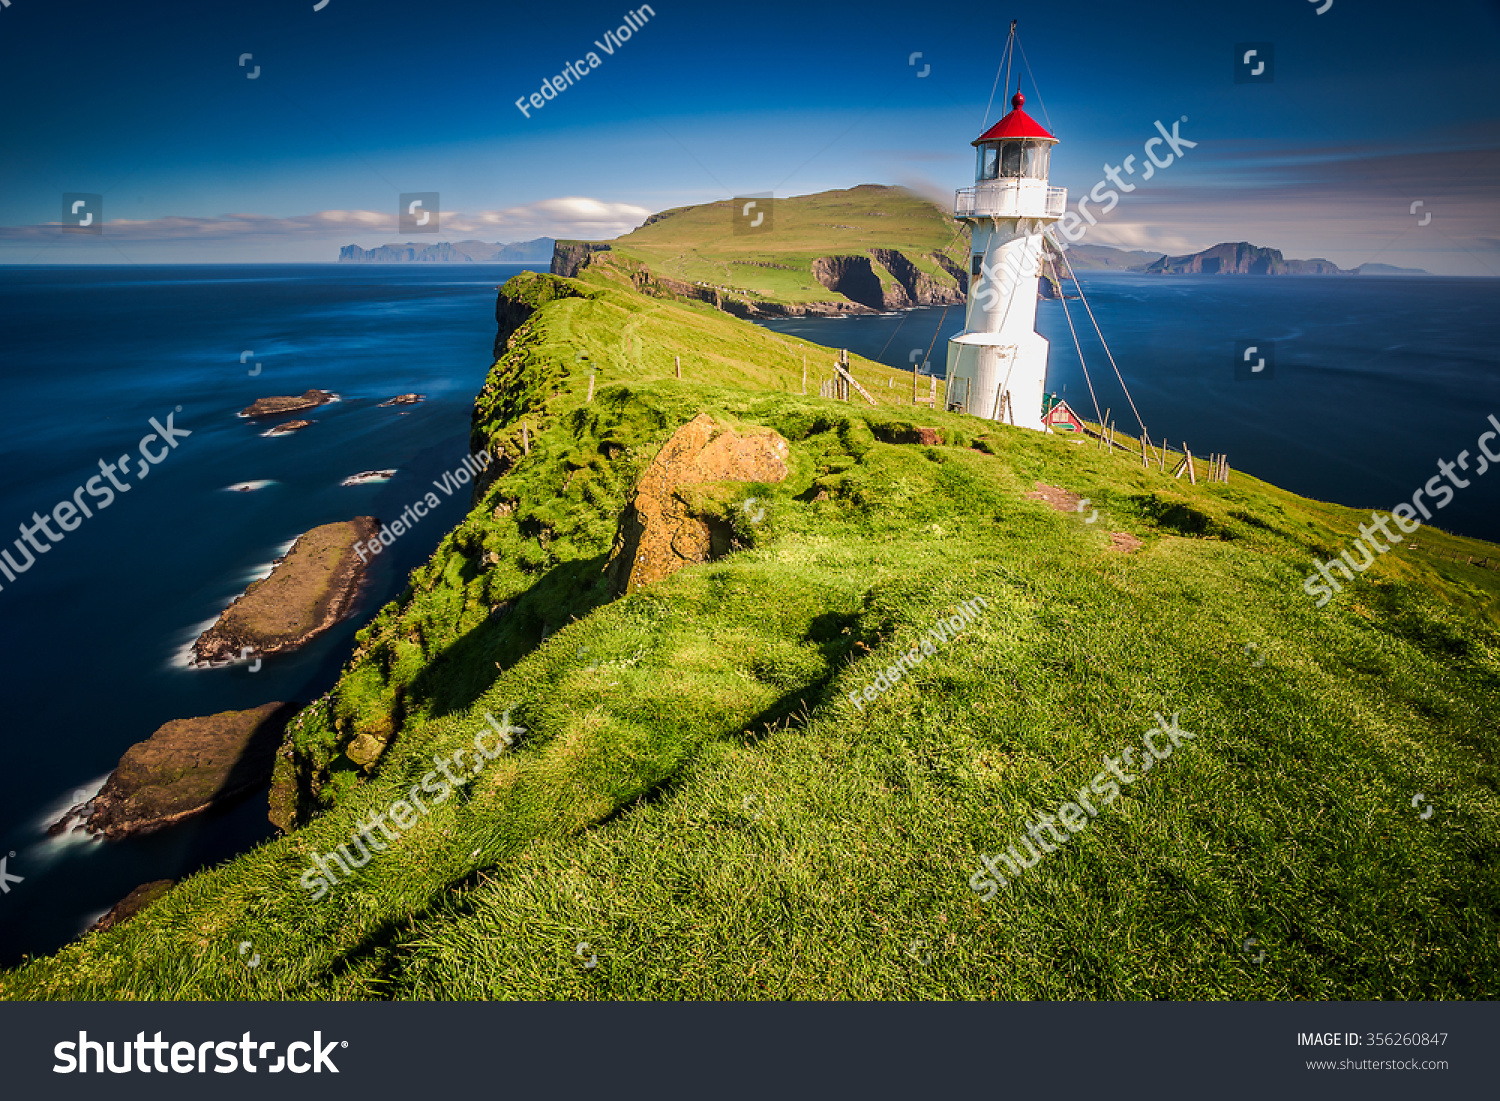 Lighthouse Faroe Islands Stock Photo 356260847 - Shutterstock